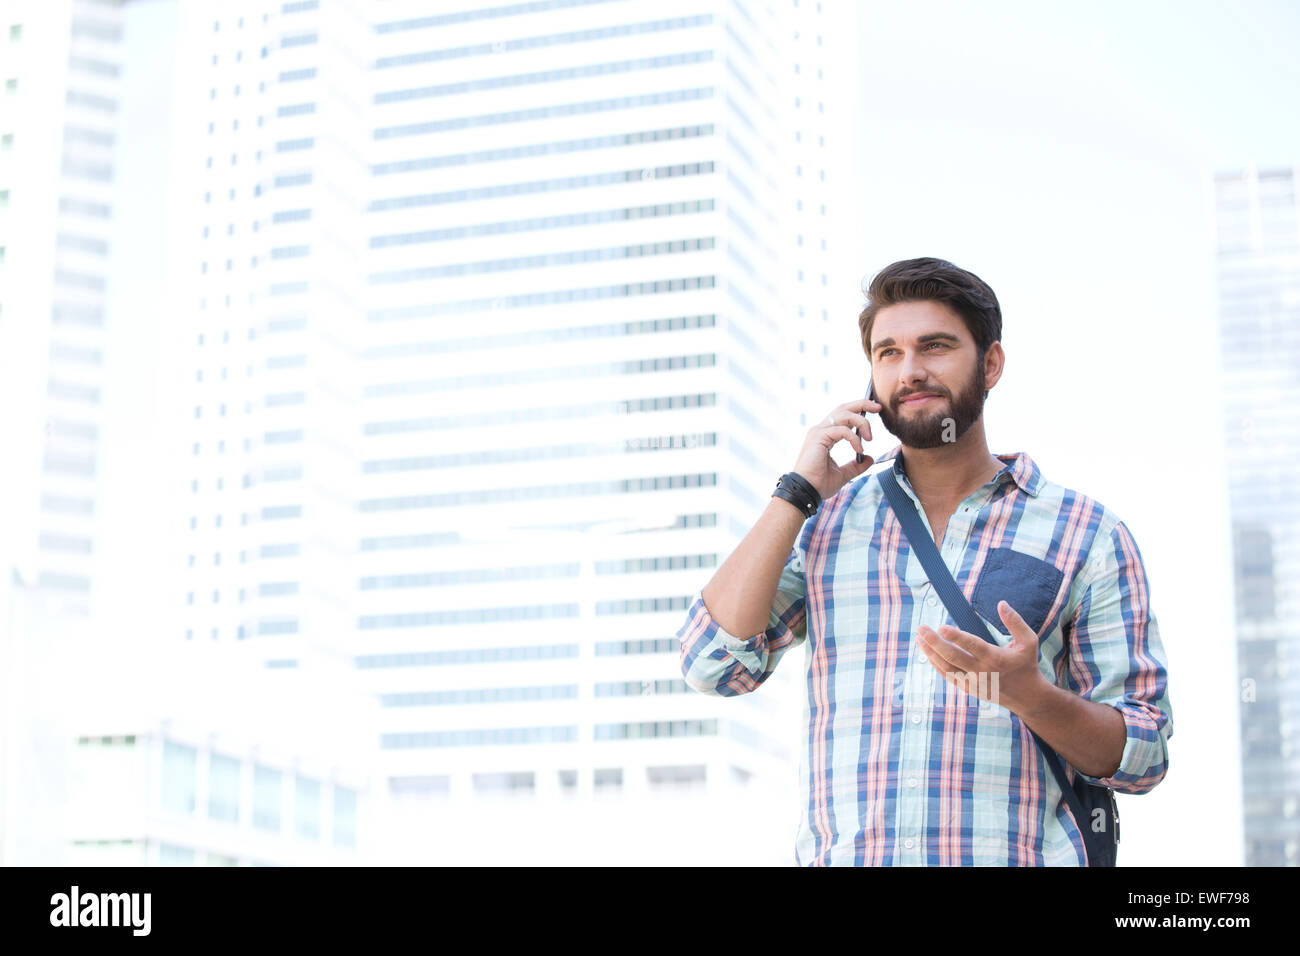 Smiling man gesturing while using cell phone in city - Stock Image